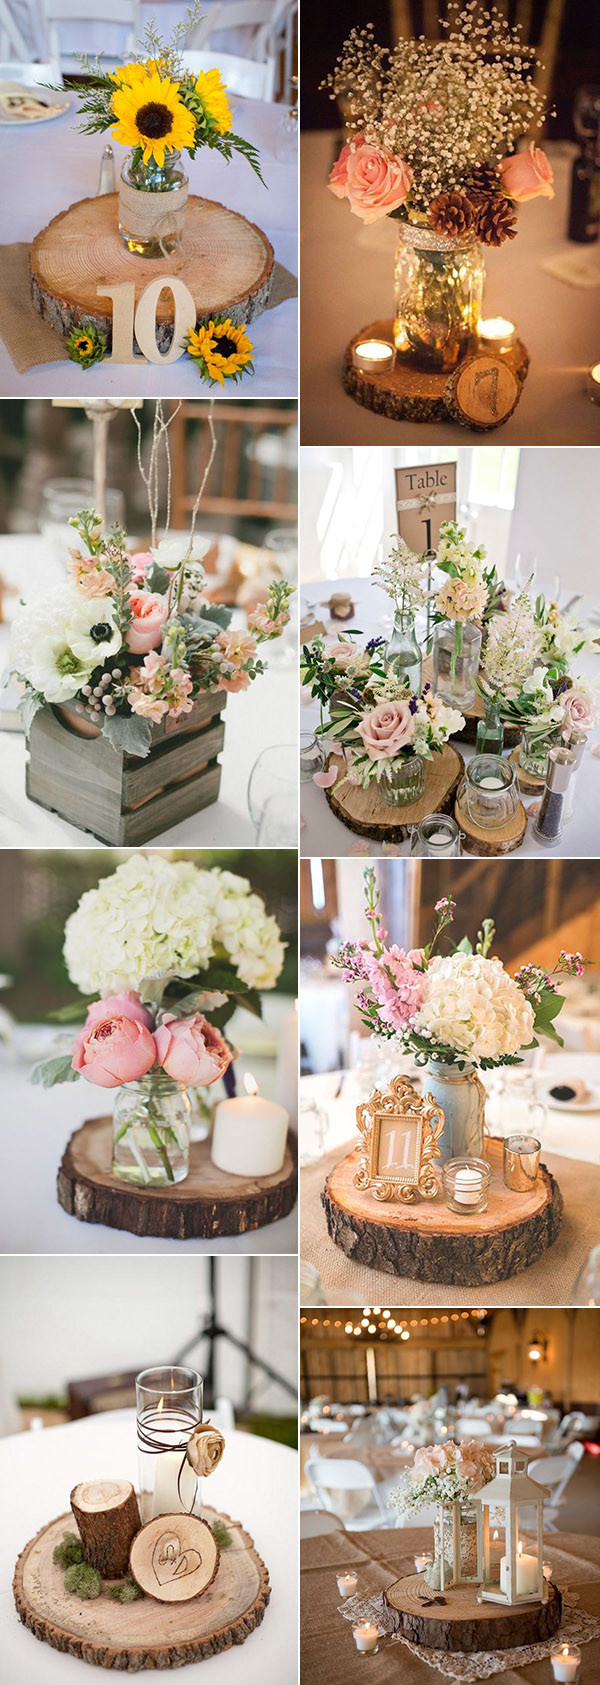 Centerpieces For Wedding Perfect 35 Centerpieces For 2017 Wedding Ideas Oh Best Day Ever